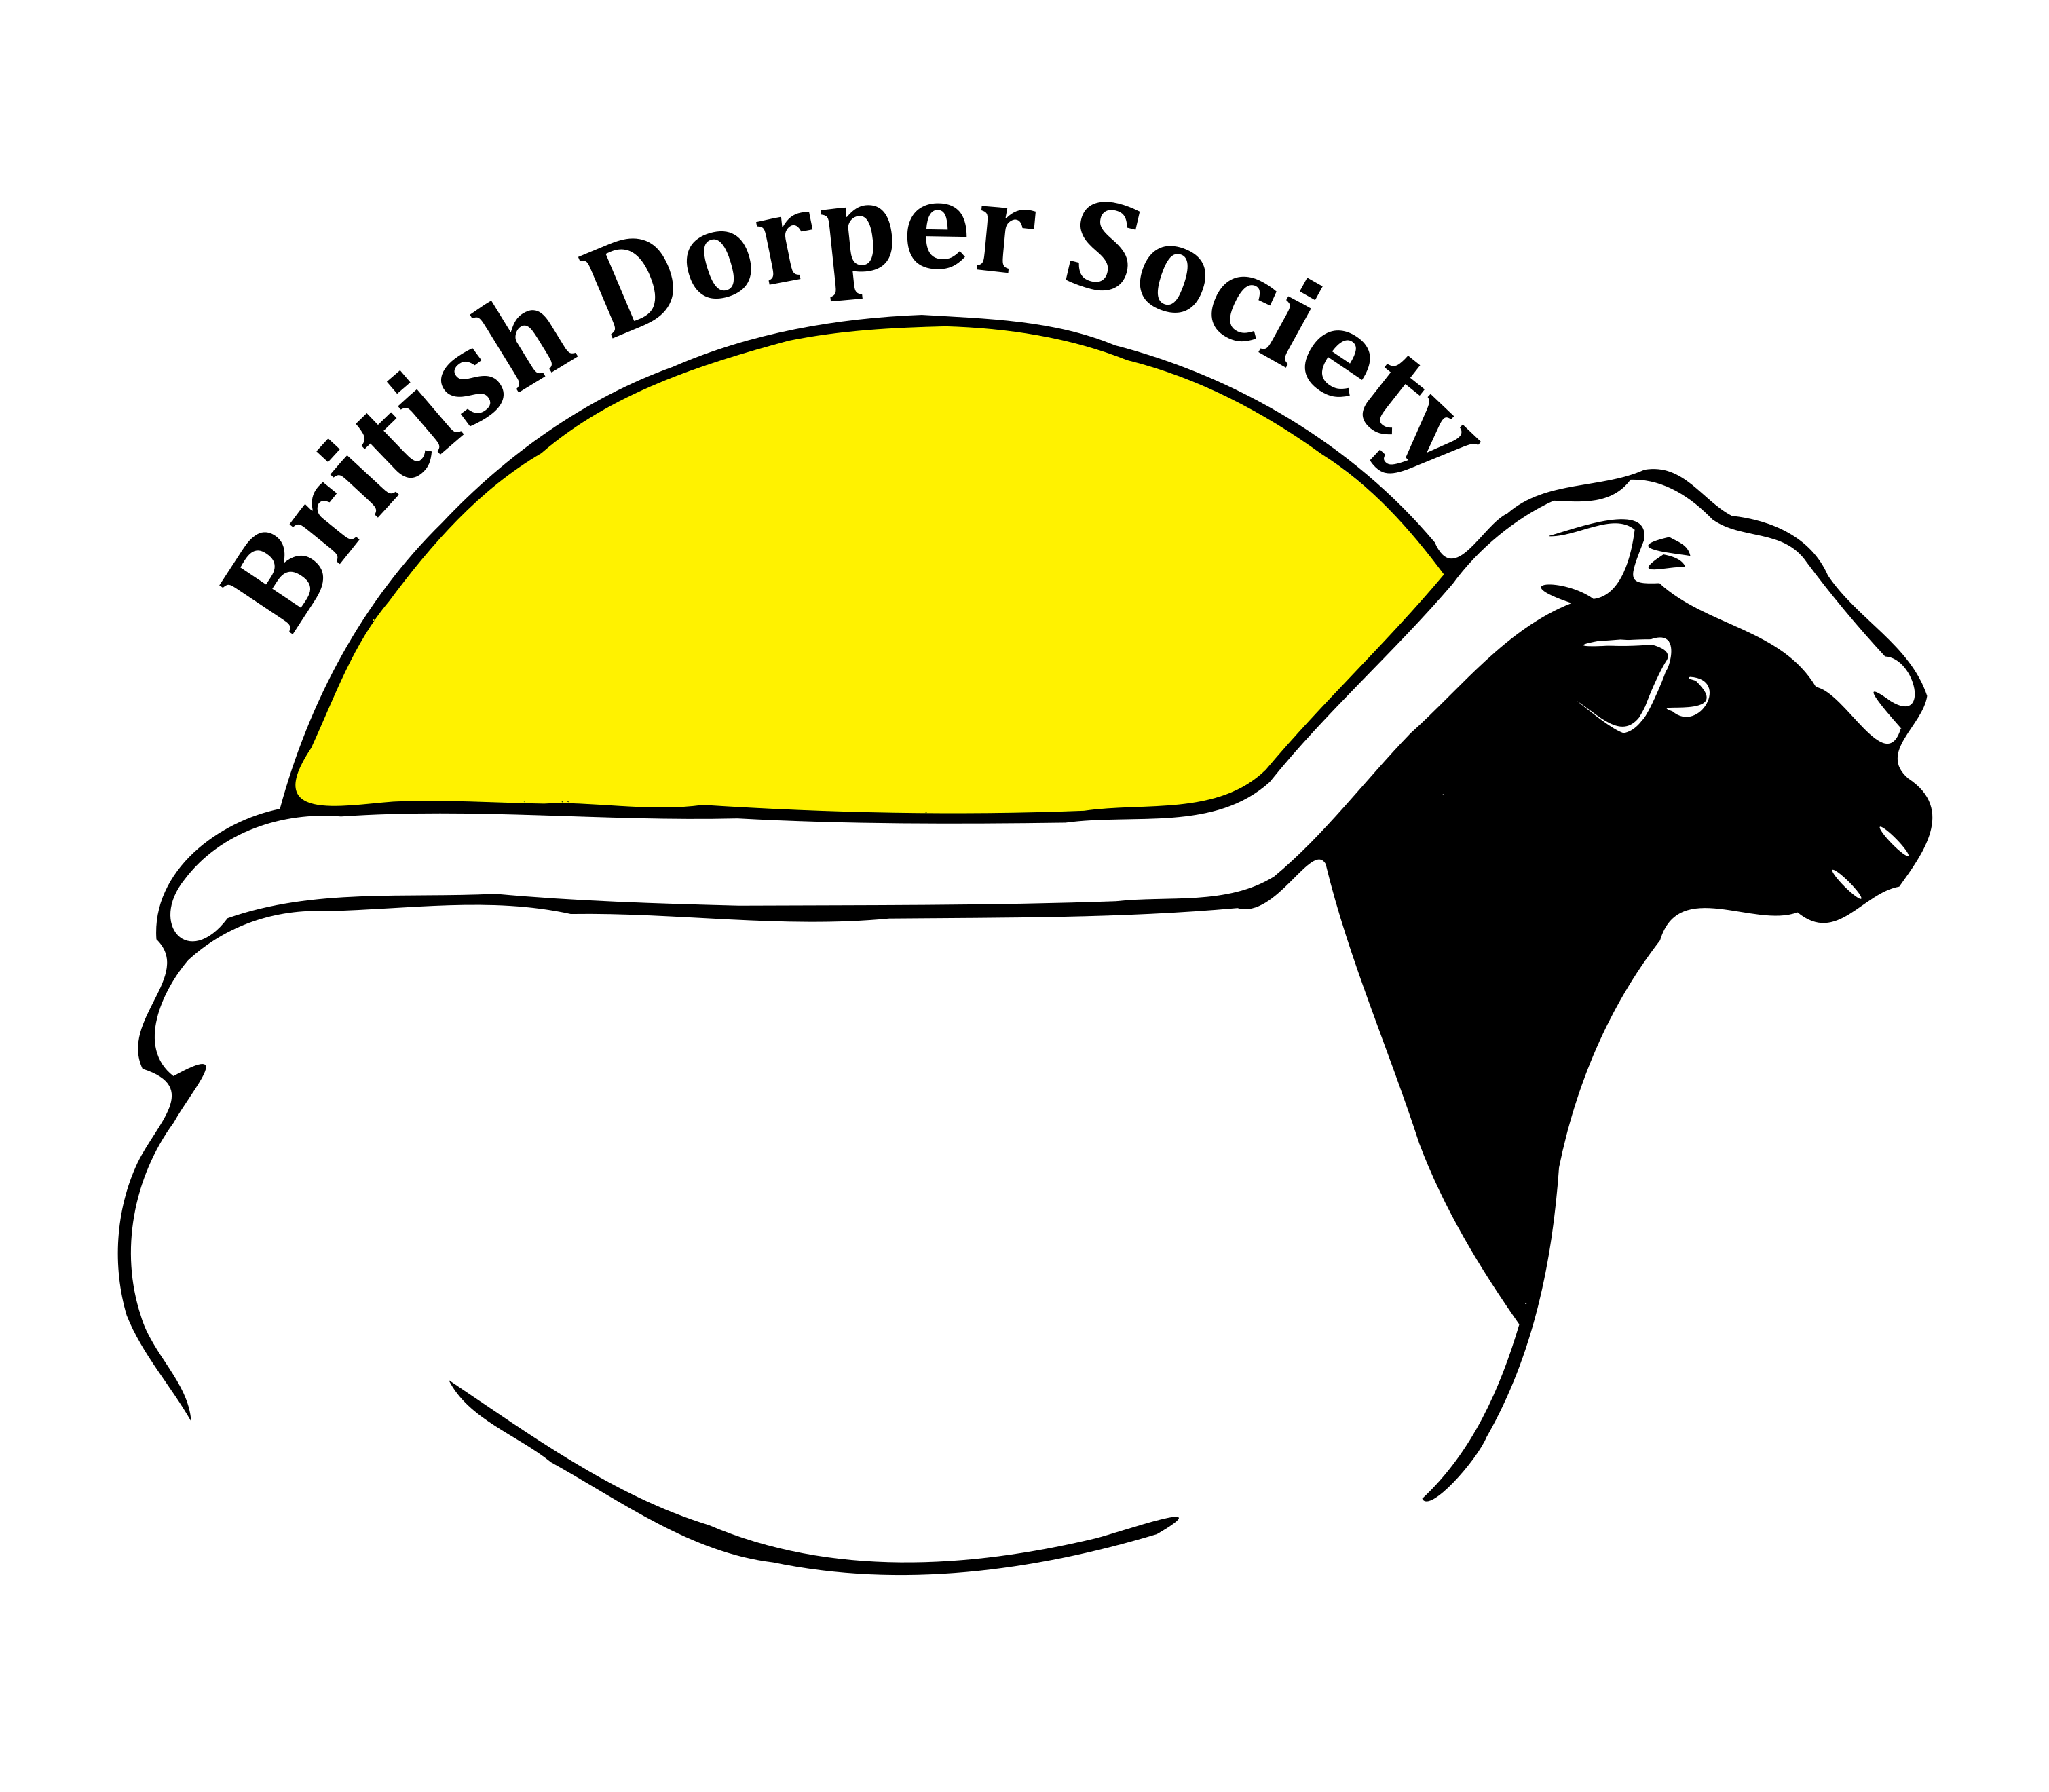 The British Dorper Sheep Society.